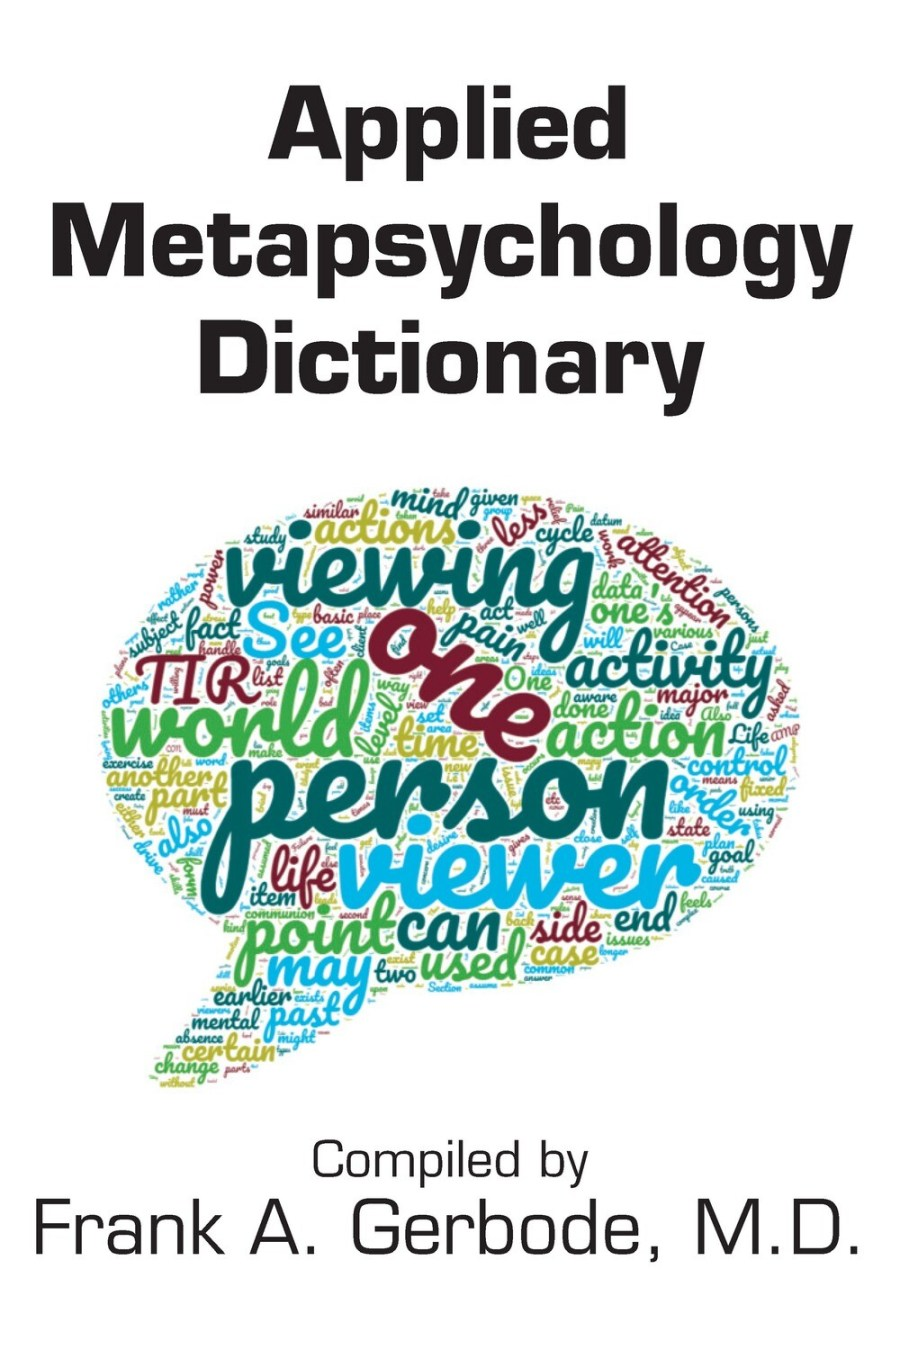 Applied Metapsychology Dictionary